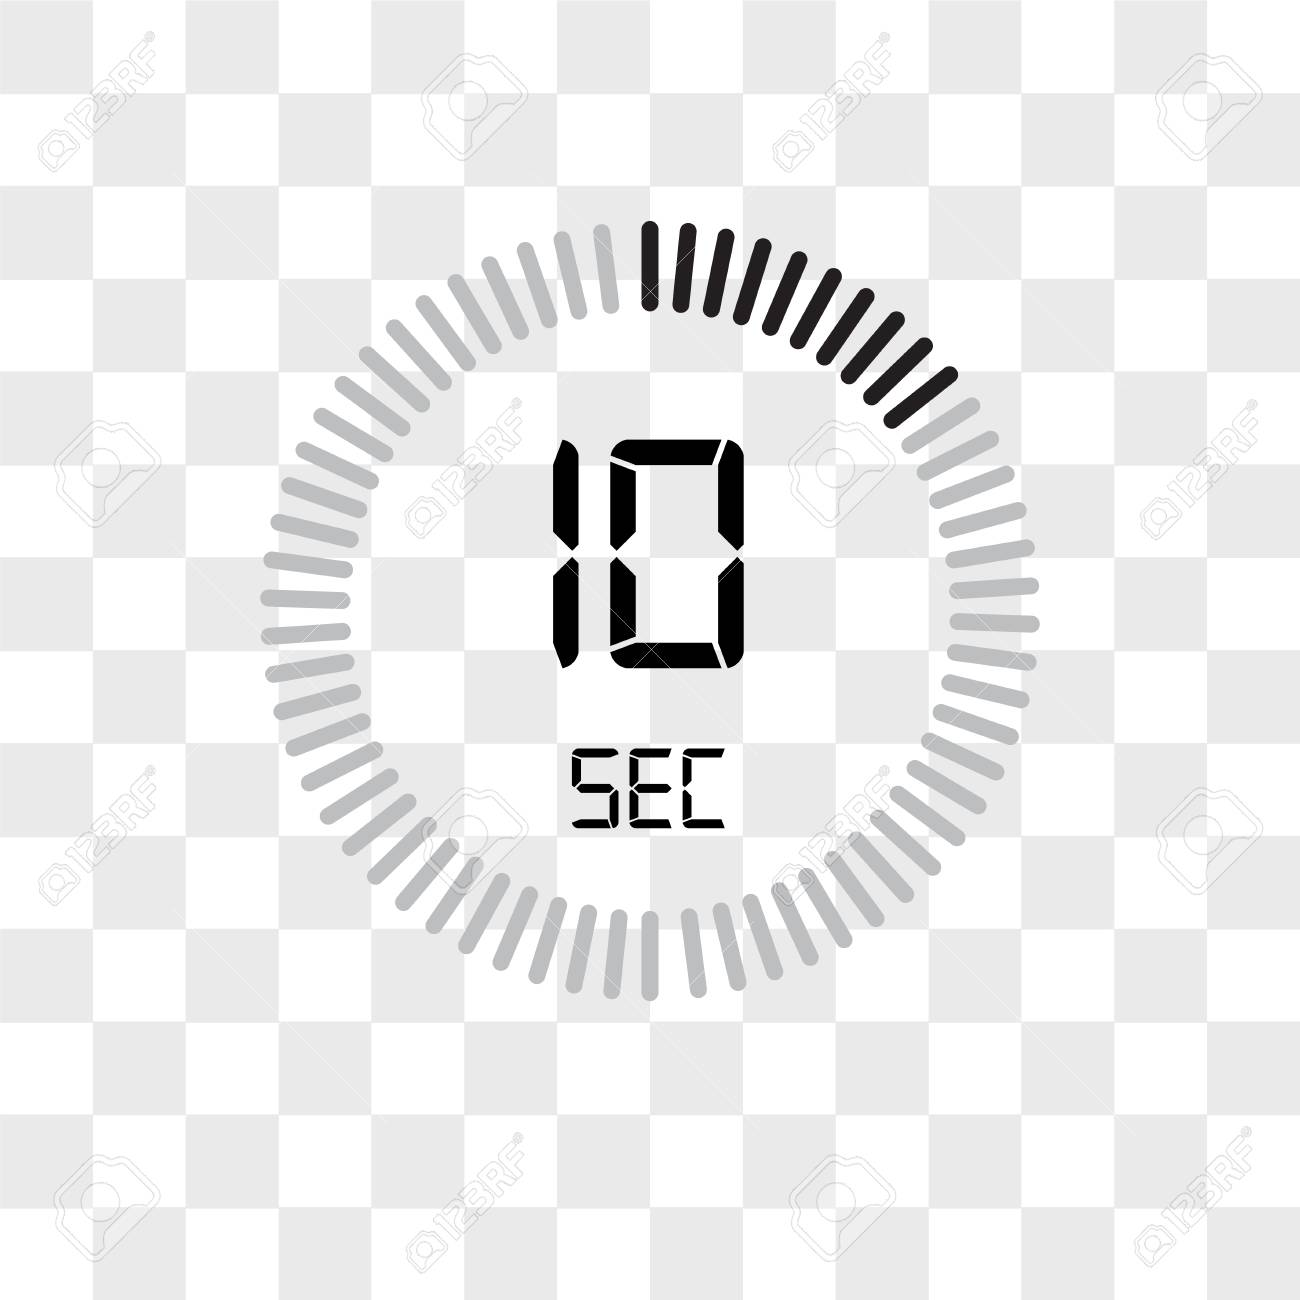 The 10 seconds vector icon isolated on transparent background, The 10 seconds logo concept - 108966565